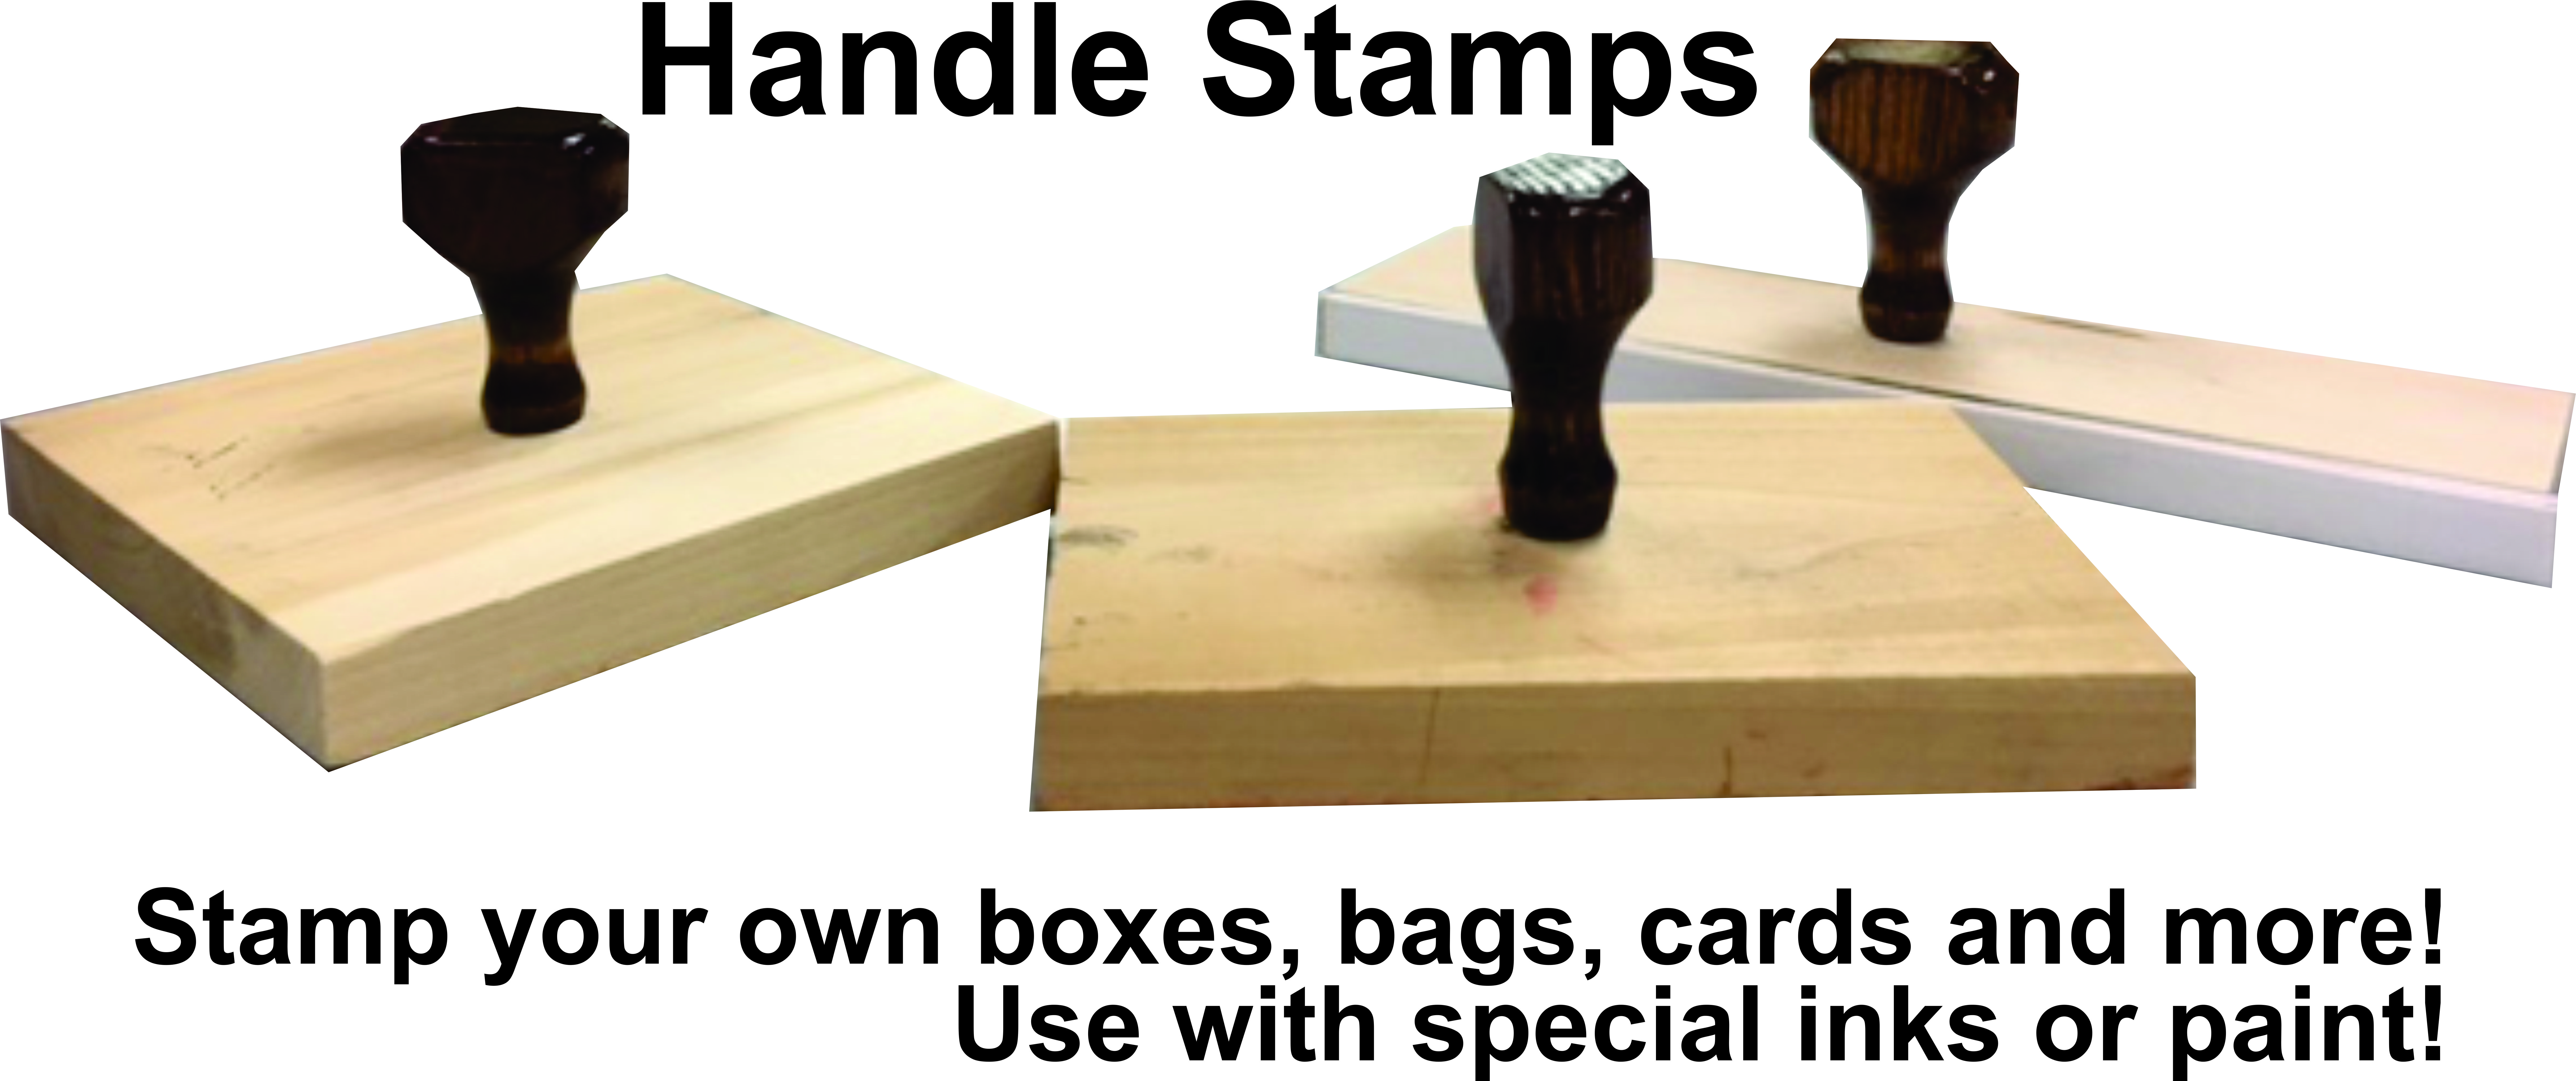 Traditional Hand Stamps  The old style handle stamps are still used often      with special or quick drying inks to mark hard to mark surfaces     To make large stamps, logo stamps for marking product bags and boxes     Simply stamps that are econom